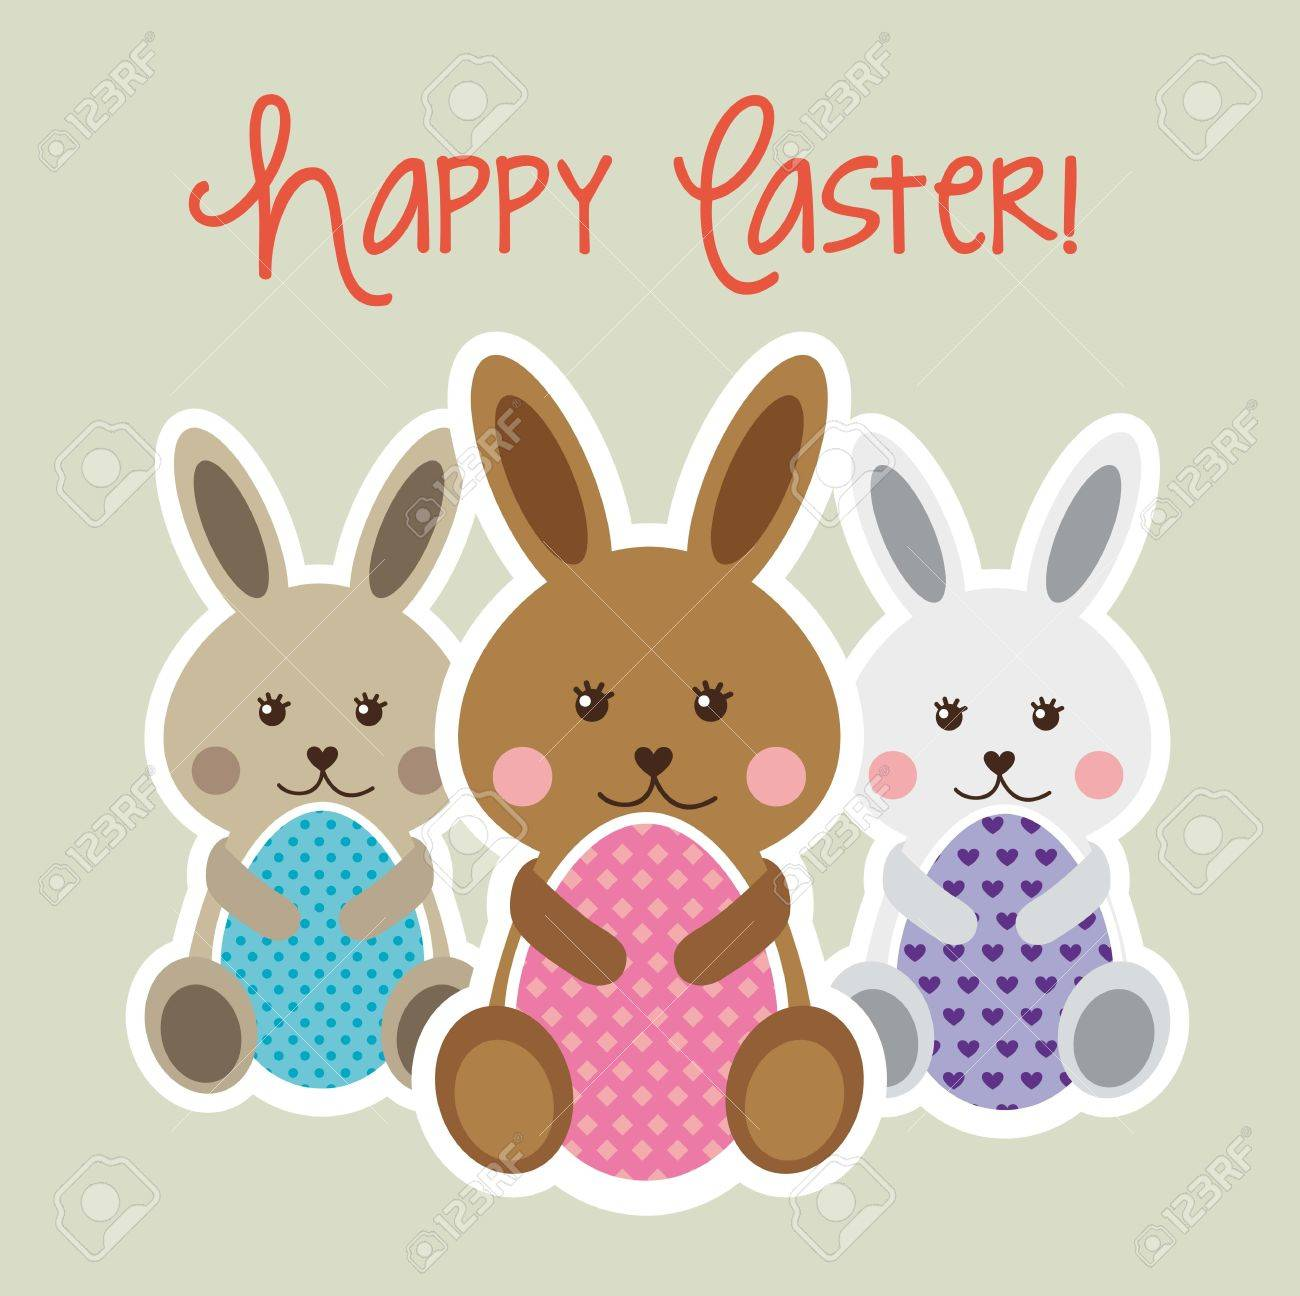 Happy Easter Card With Rabbit And Egg Vector Illustration Royalty – Happy Easter Card